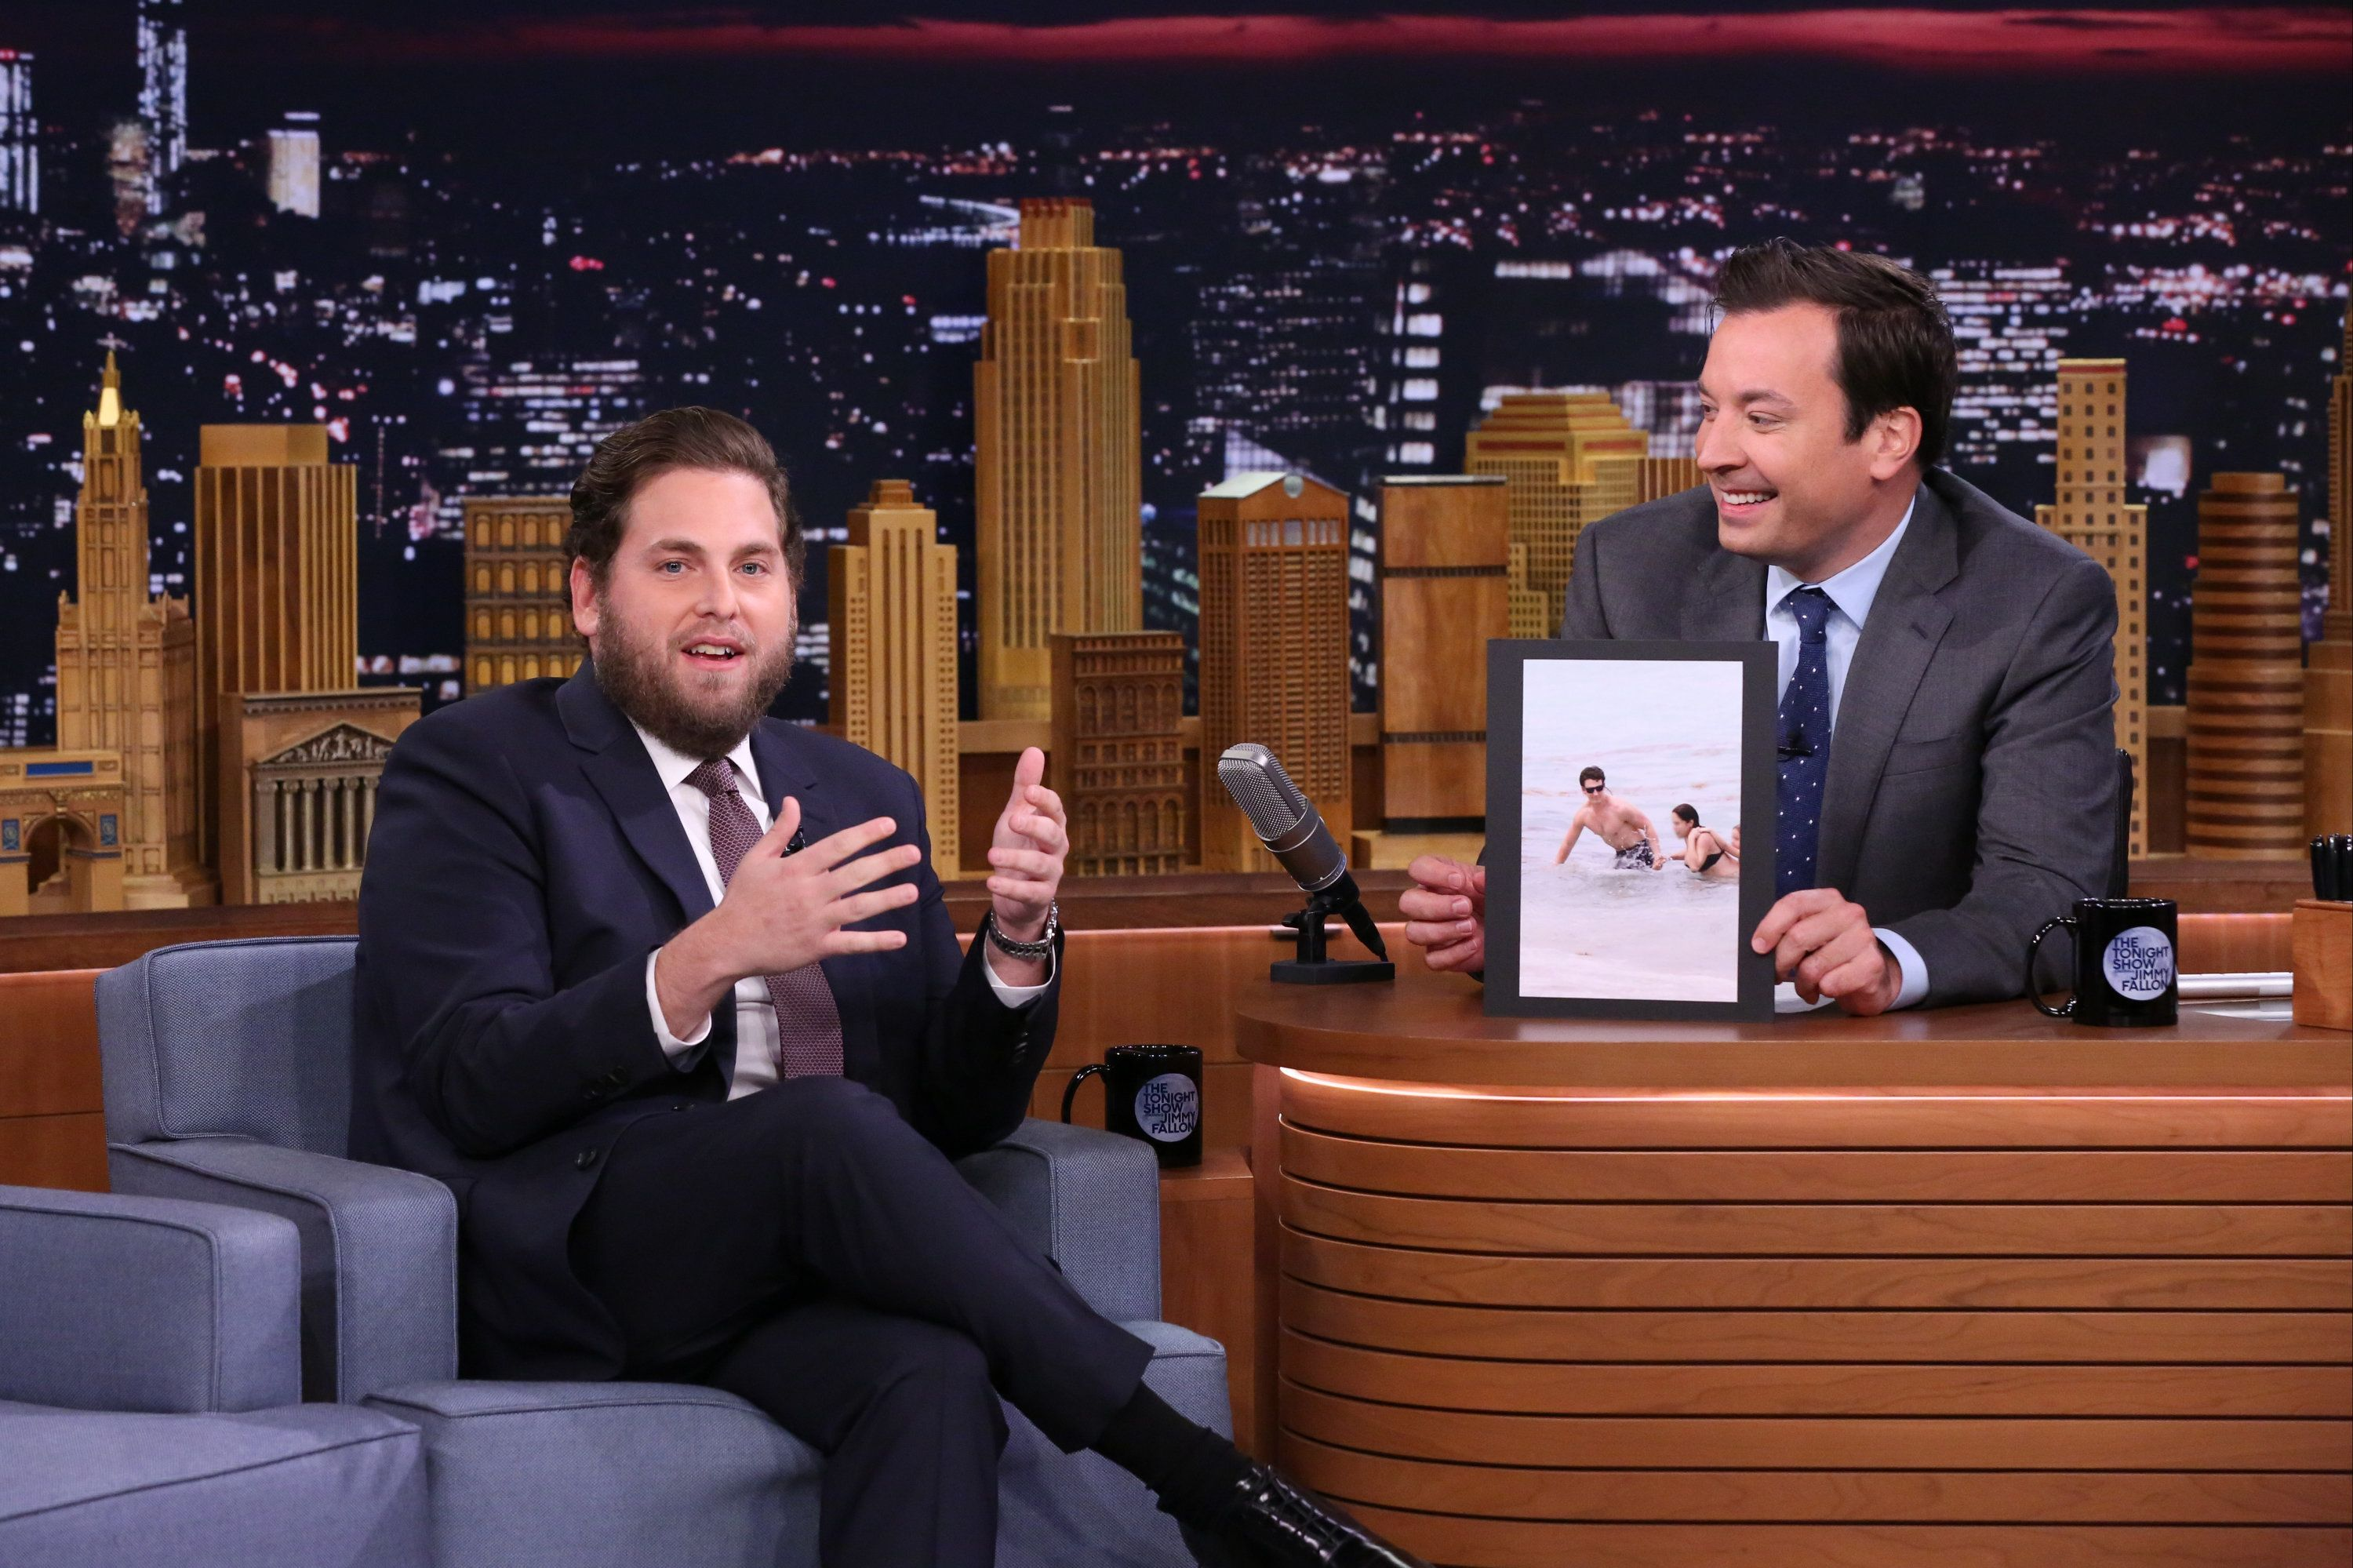 THE TONIGHT SHOW STARRING JIMMY FALLON -- Episode 0513 -- Pictured: (l-r) Actor Jonah Hill during an interview with host Jimmy Fallon on August 2, 2016 -- (Photo by: Andrew Lipovsky/NBC/NBCU Photo Bank via Getty Images)